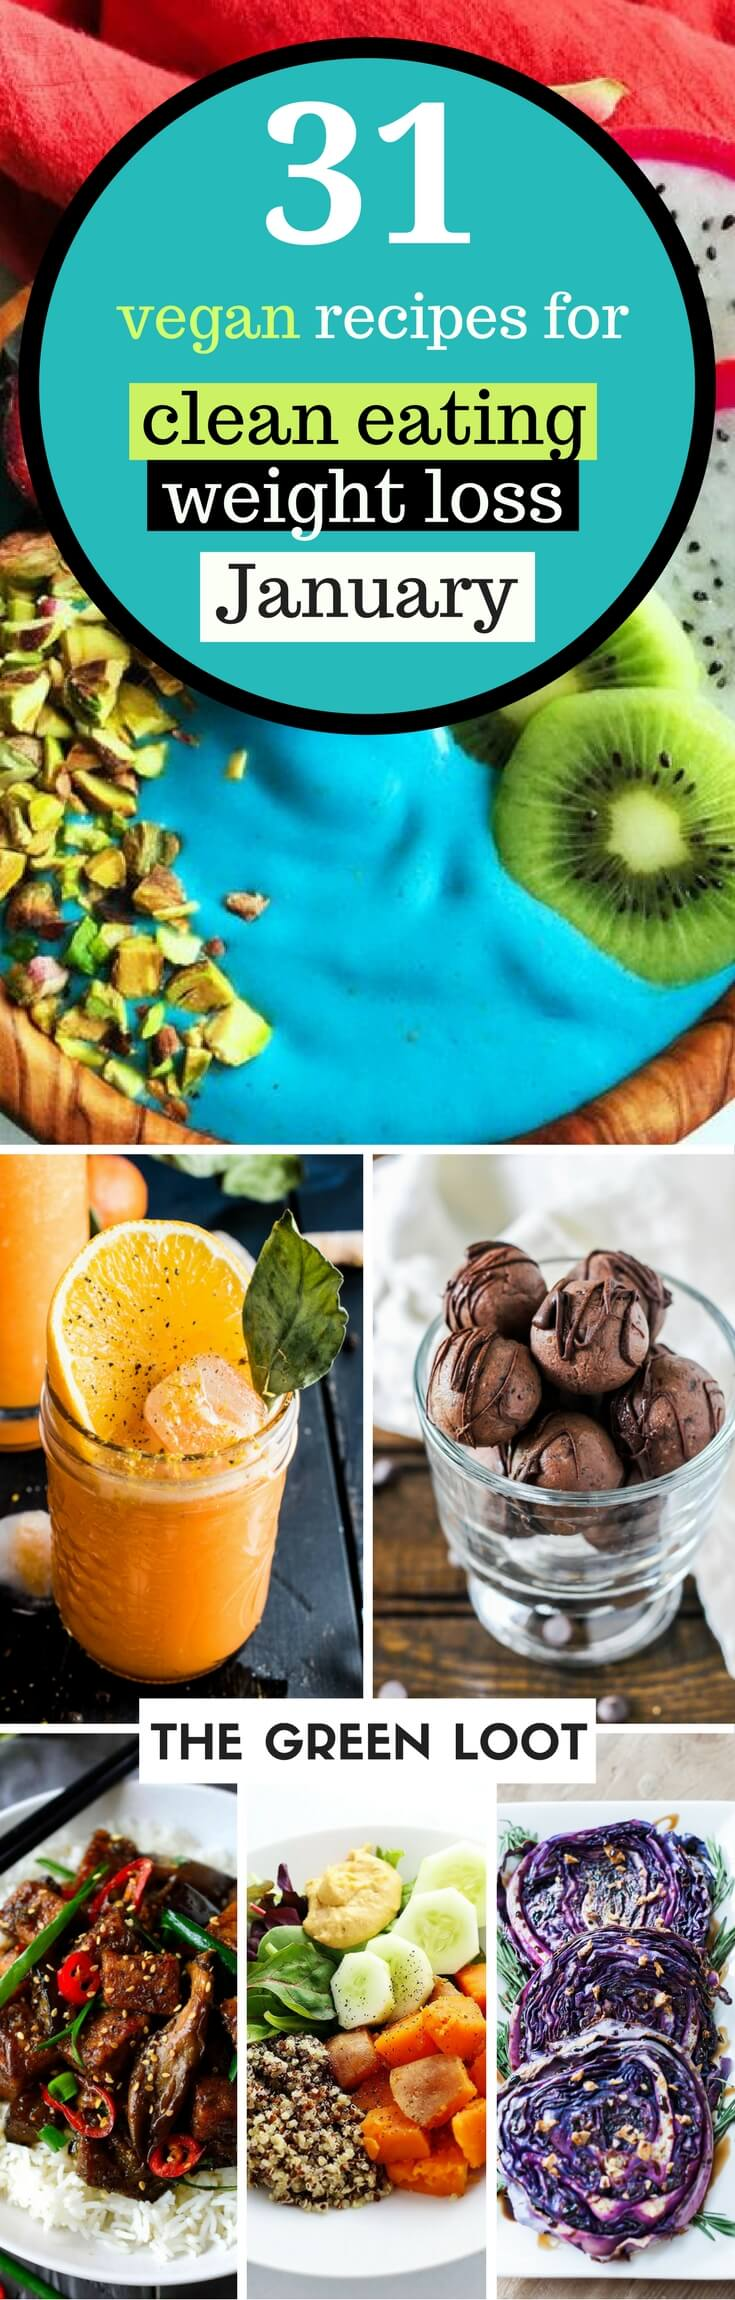 Vegan clean eating weight loss recipes - January | Have you made a New Year's resolution to lose weight? These tasty and healthy breakfast, lunch, snack and dinner recipes are perfect for meal prep or a diet challenge. | The Green Loot #vegan #cleaneating #weightloss